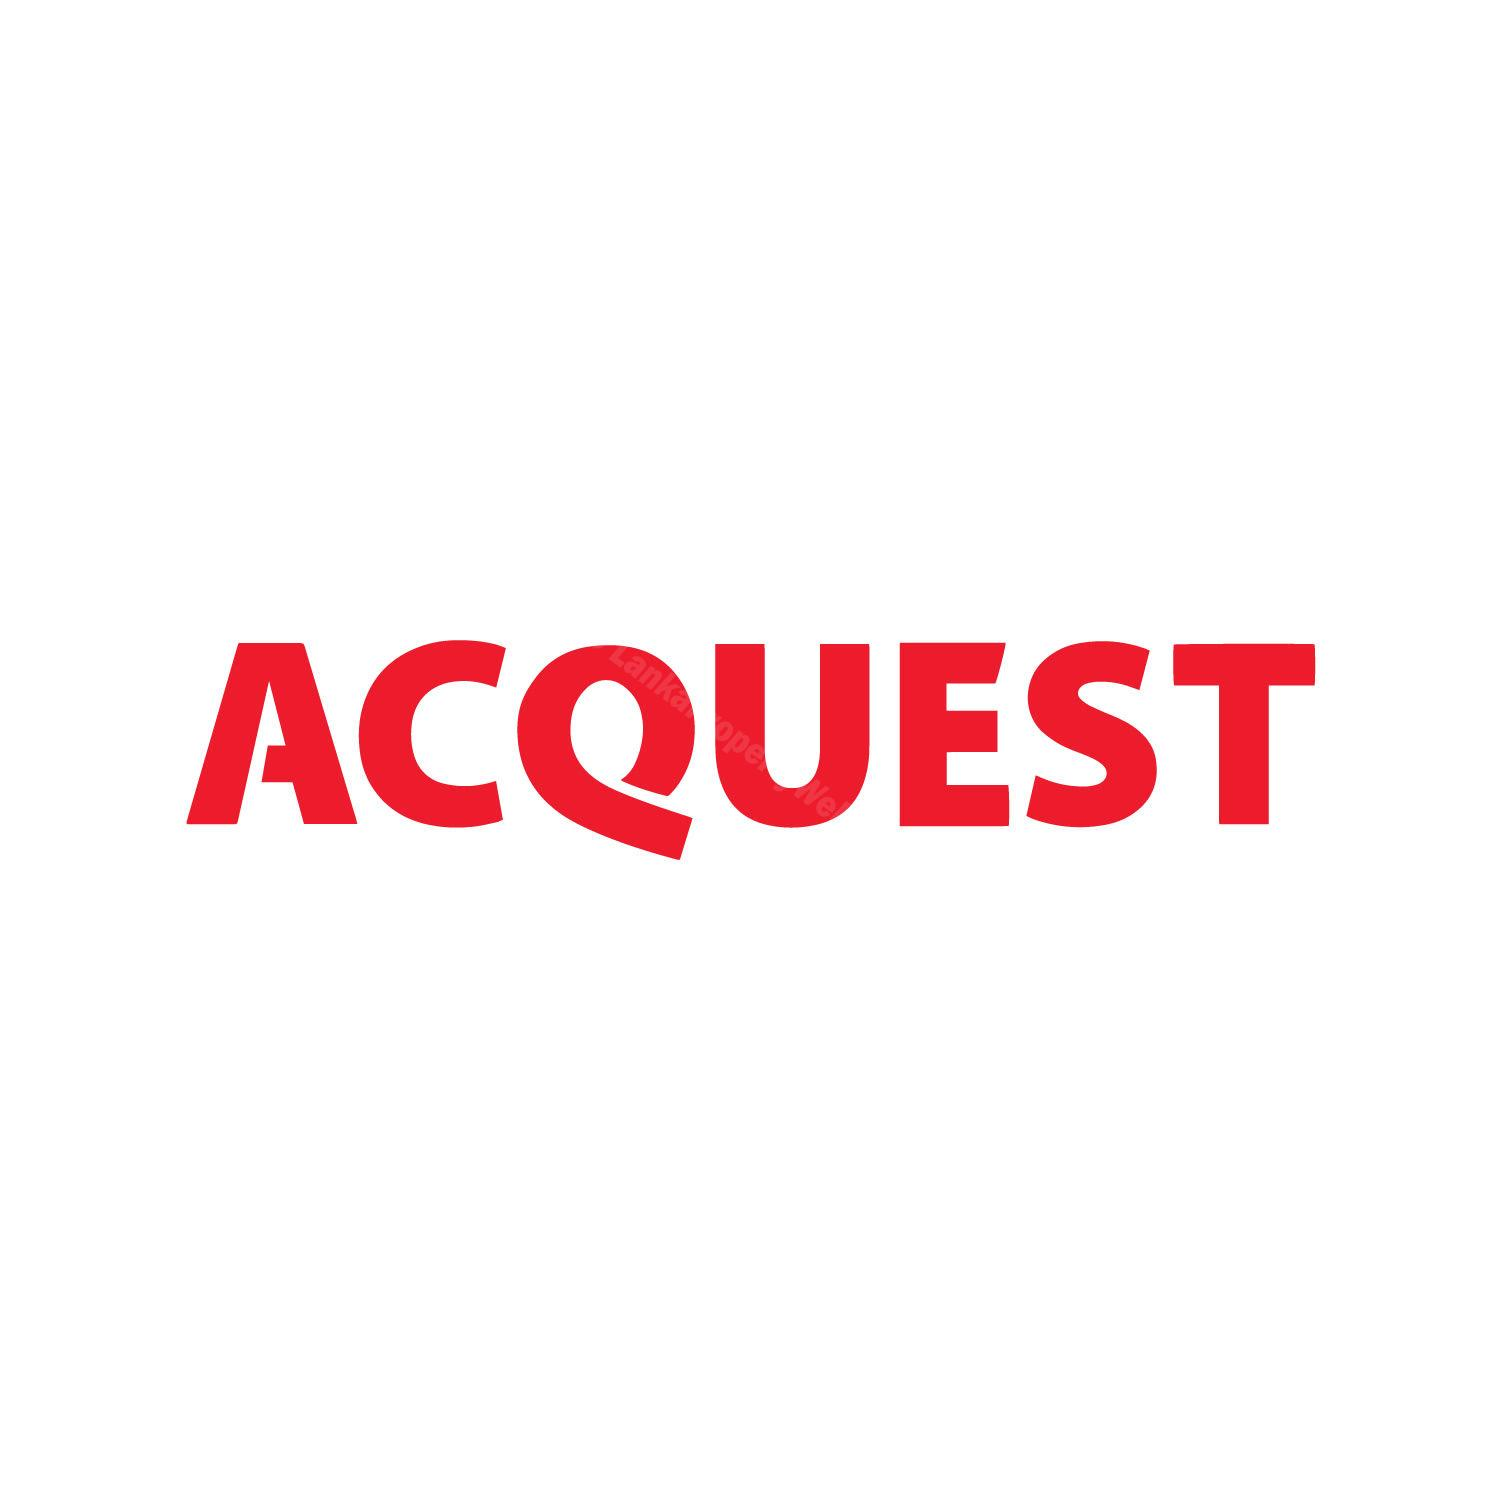 Acquest Private Limited